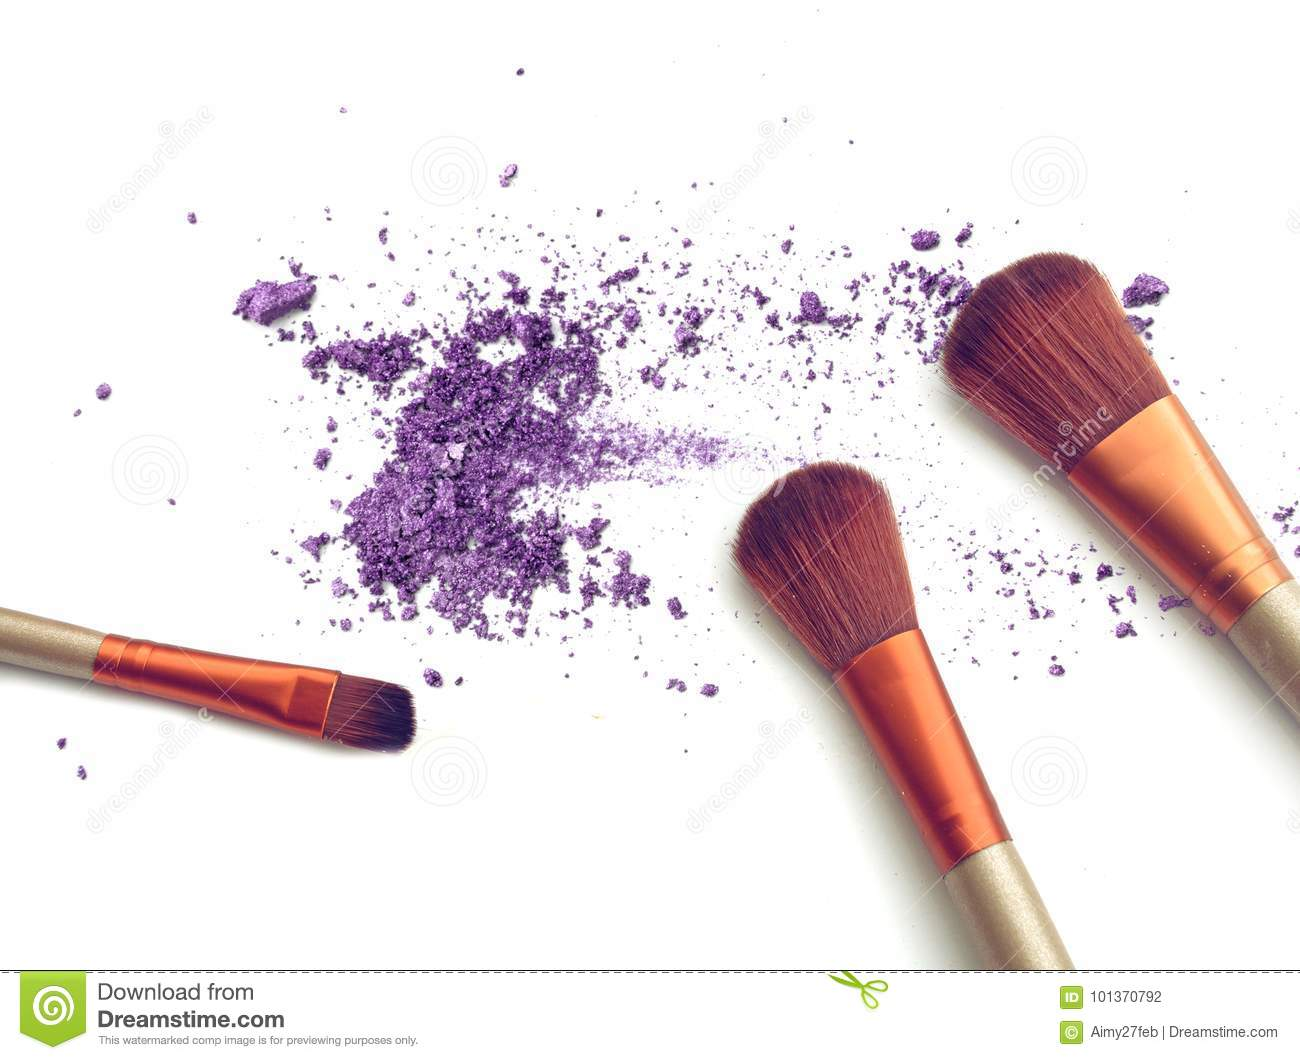 Purple crushed make up color powder and blush.